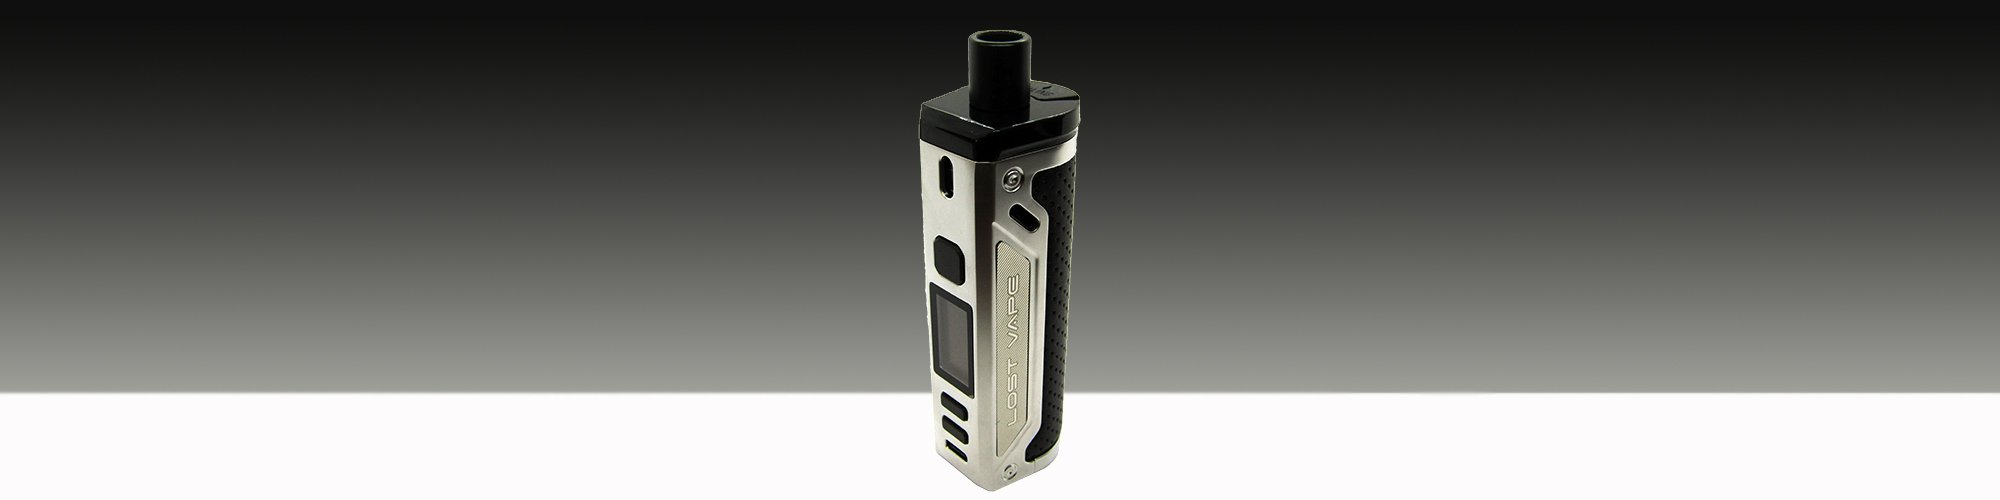 Lost Vape Thelema Review Main Banner